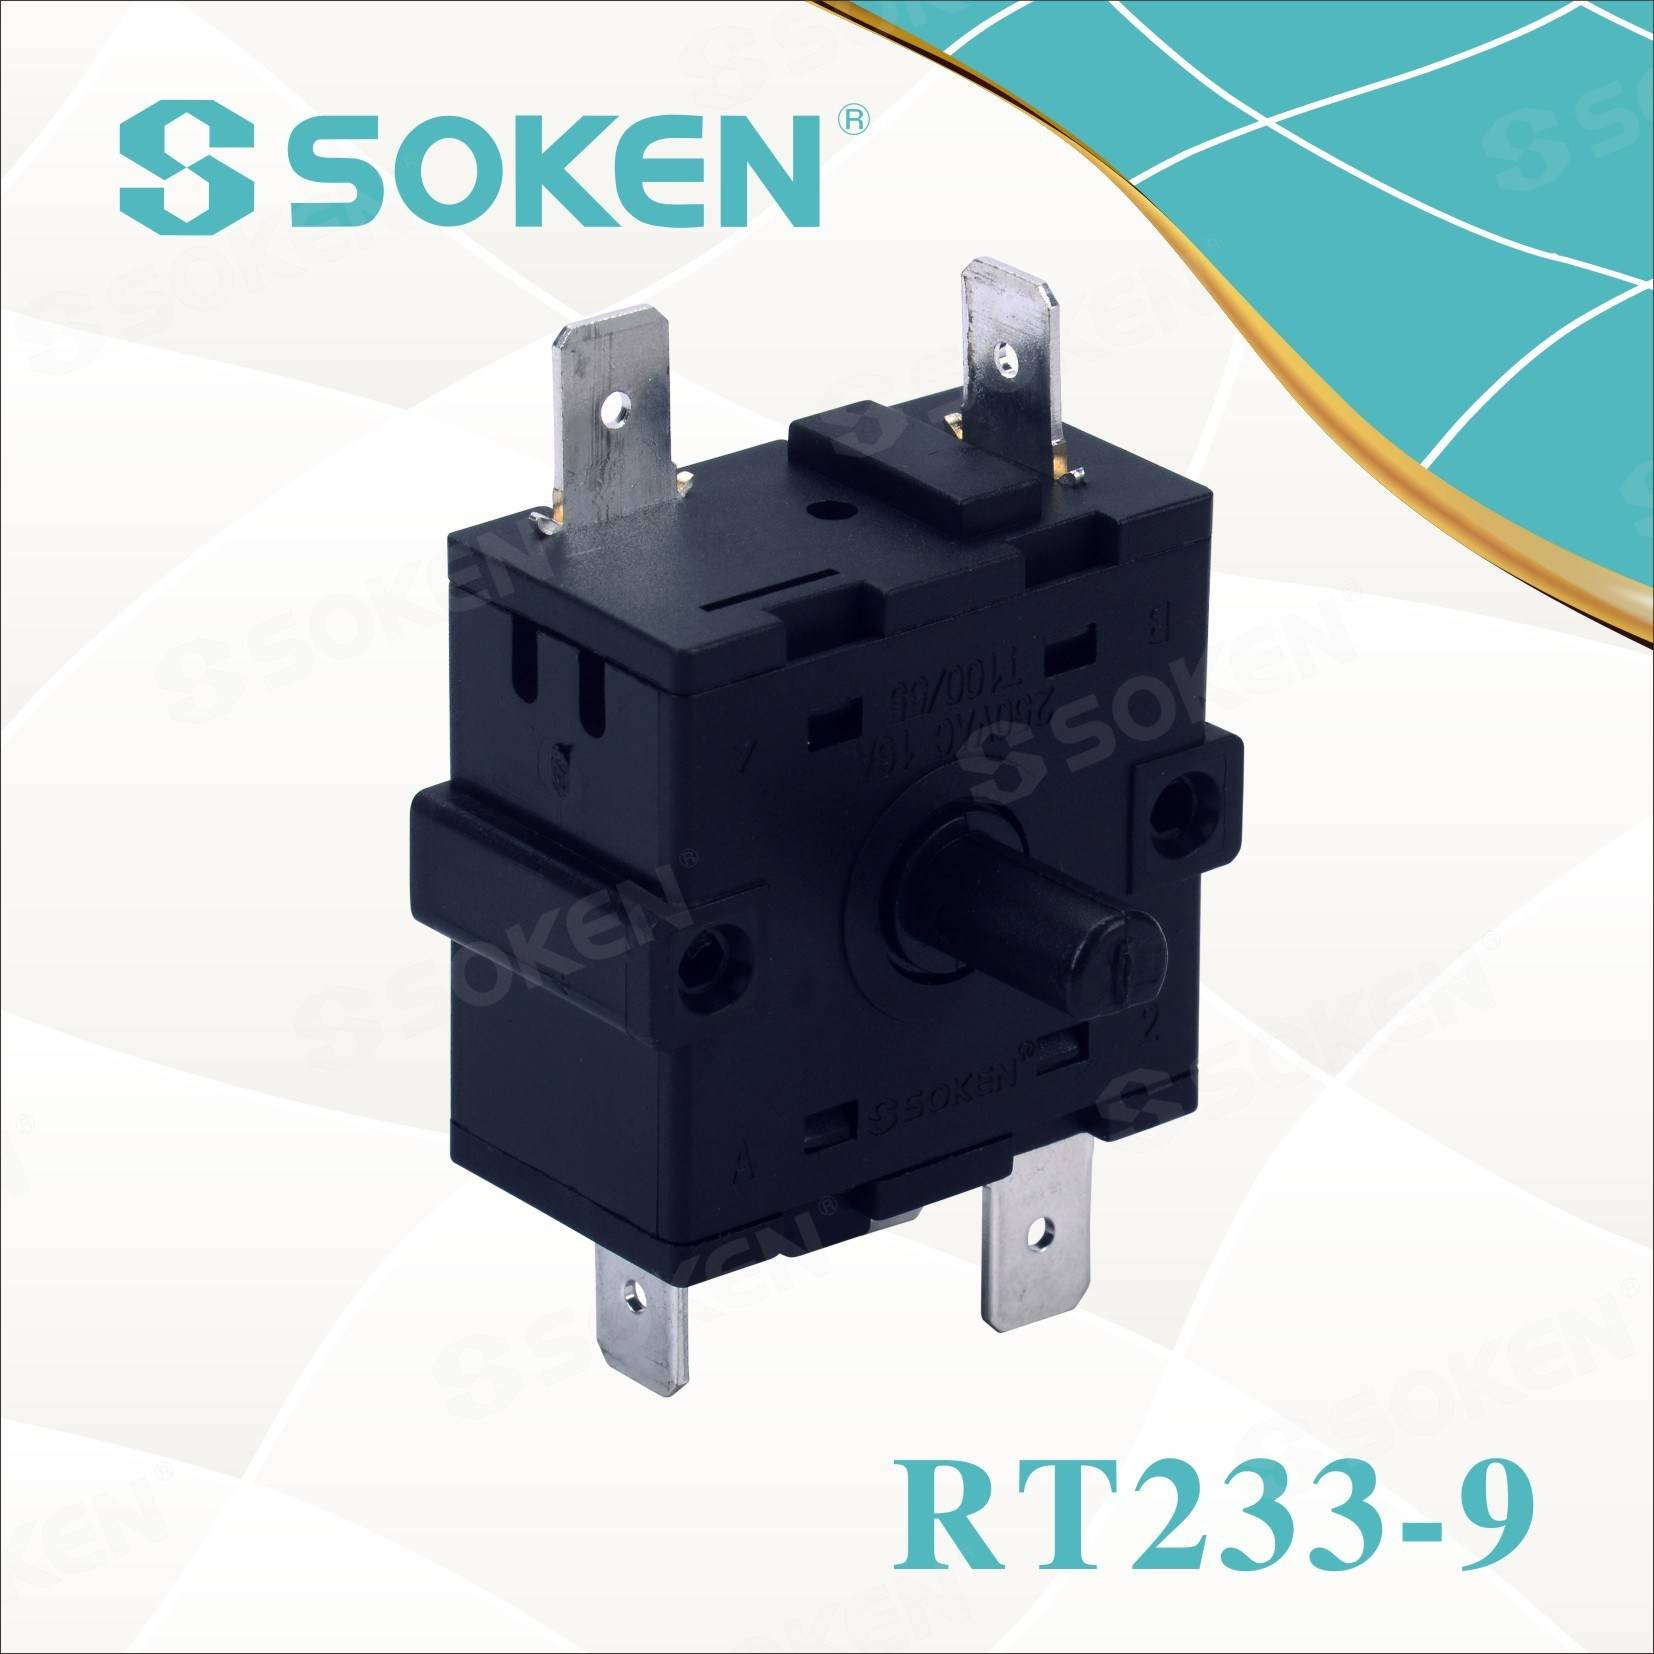 Personlized Products Lighted Momentary Switch -